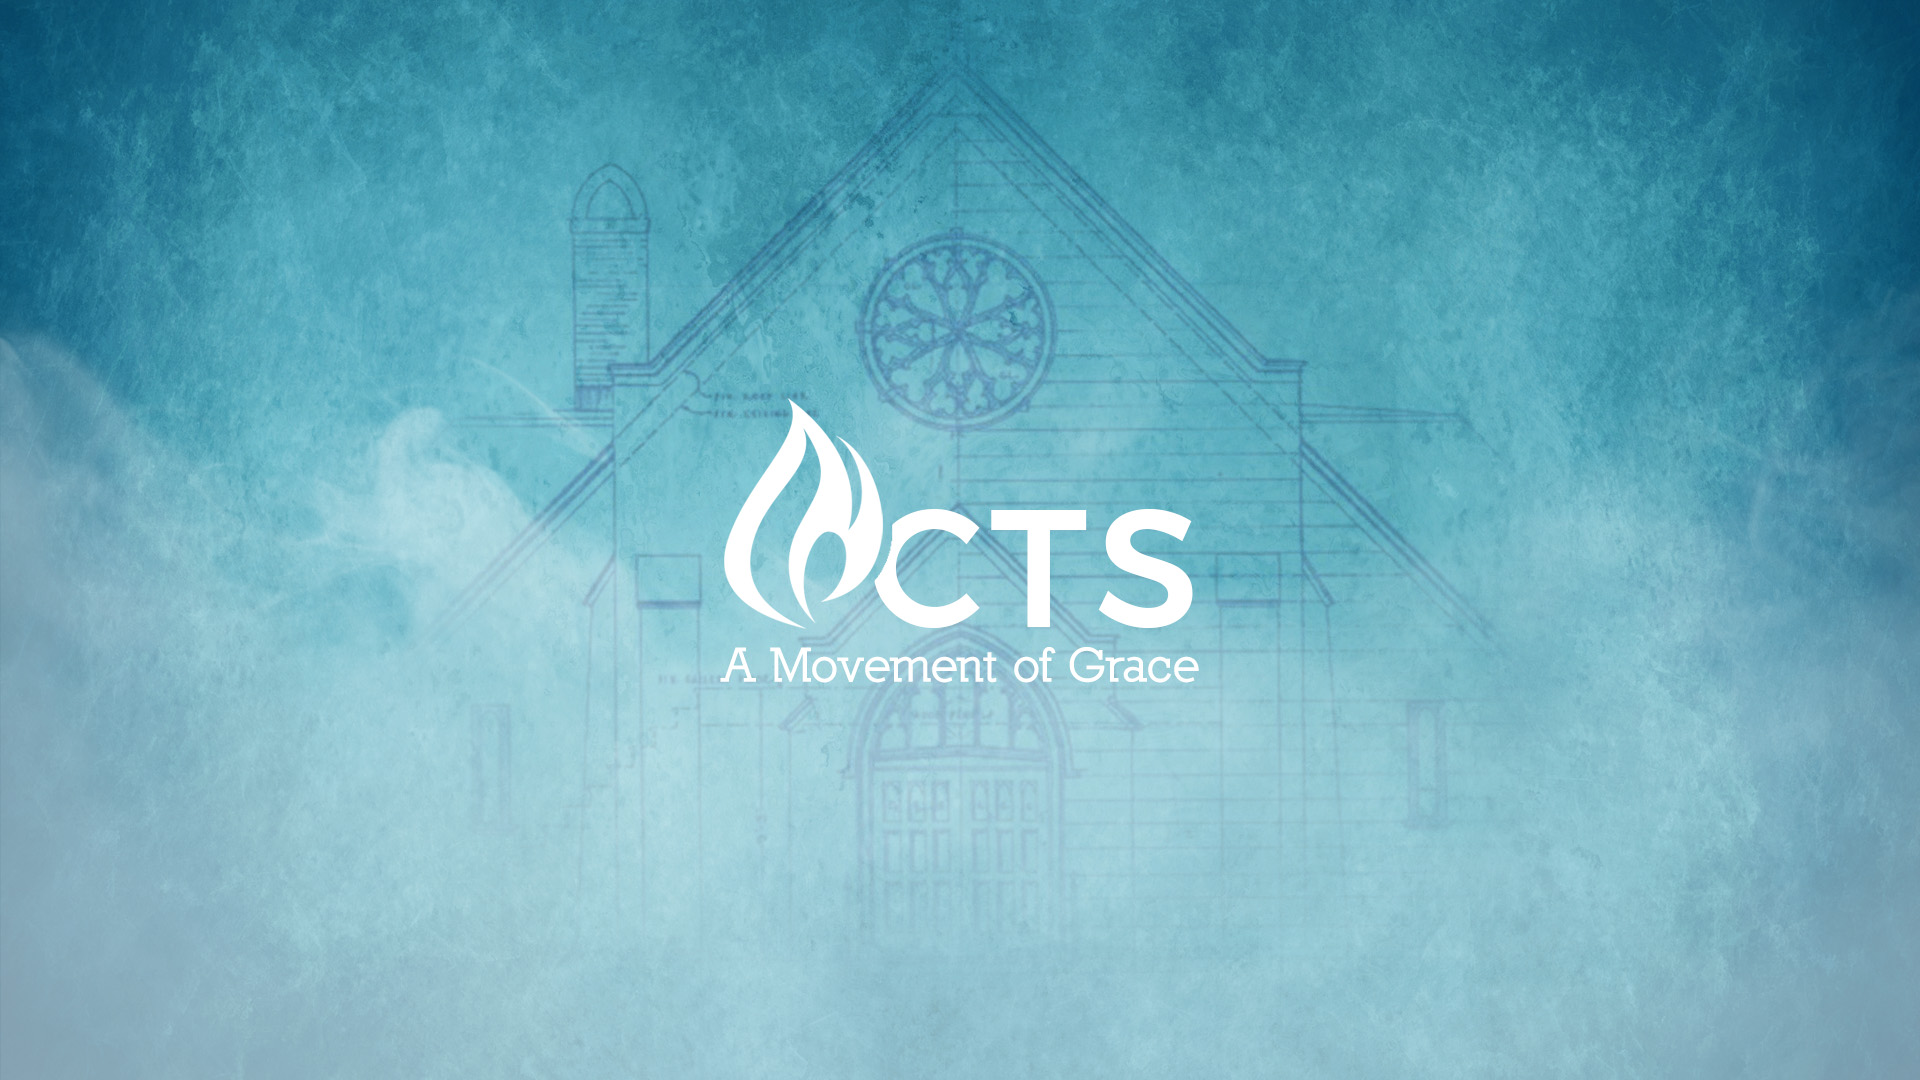 Acts Graphic02.jpg